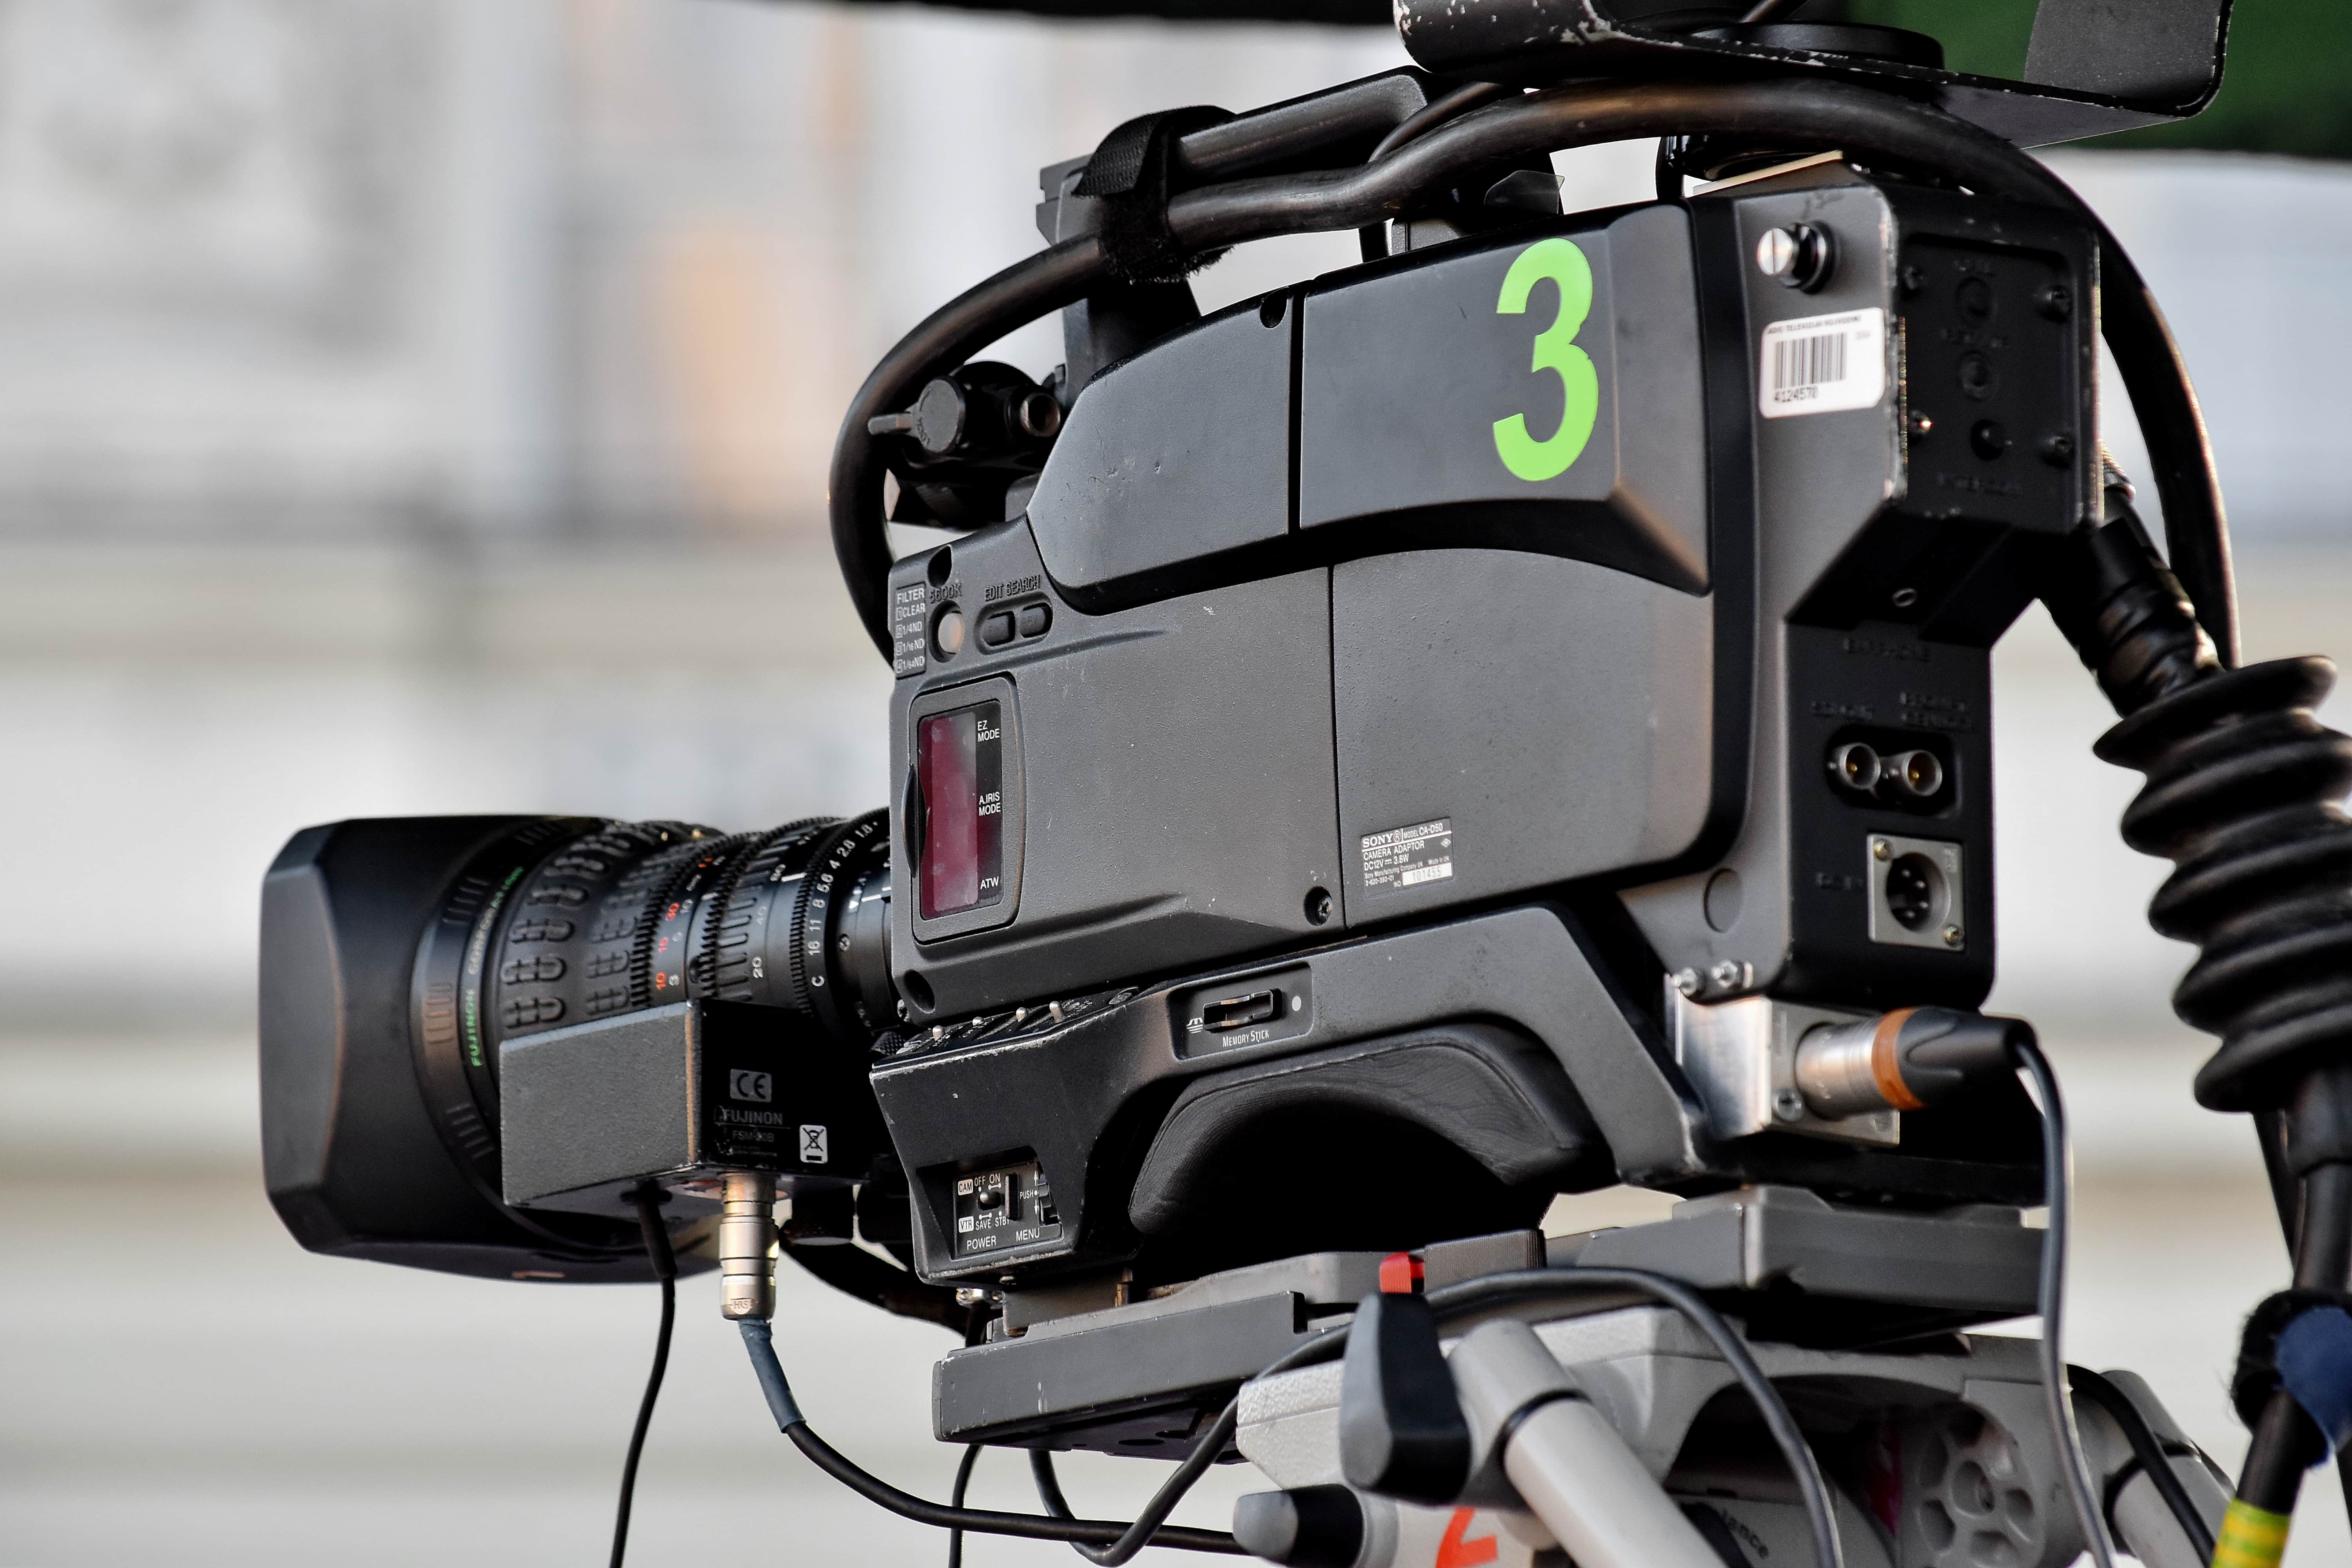 Free picture: television, television news, tripod, video recording, electronics, machinery, lens ...